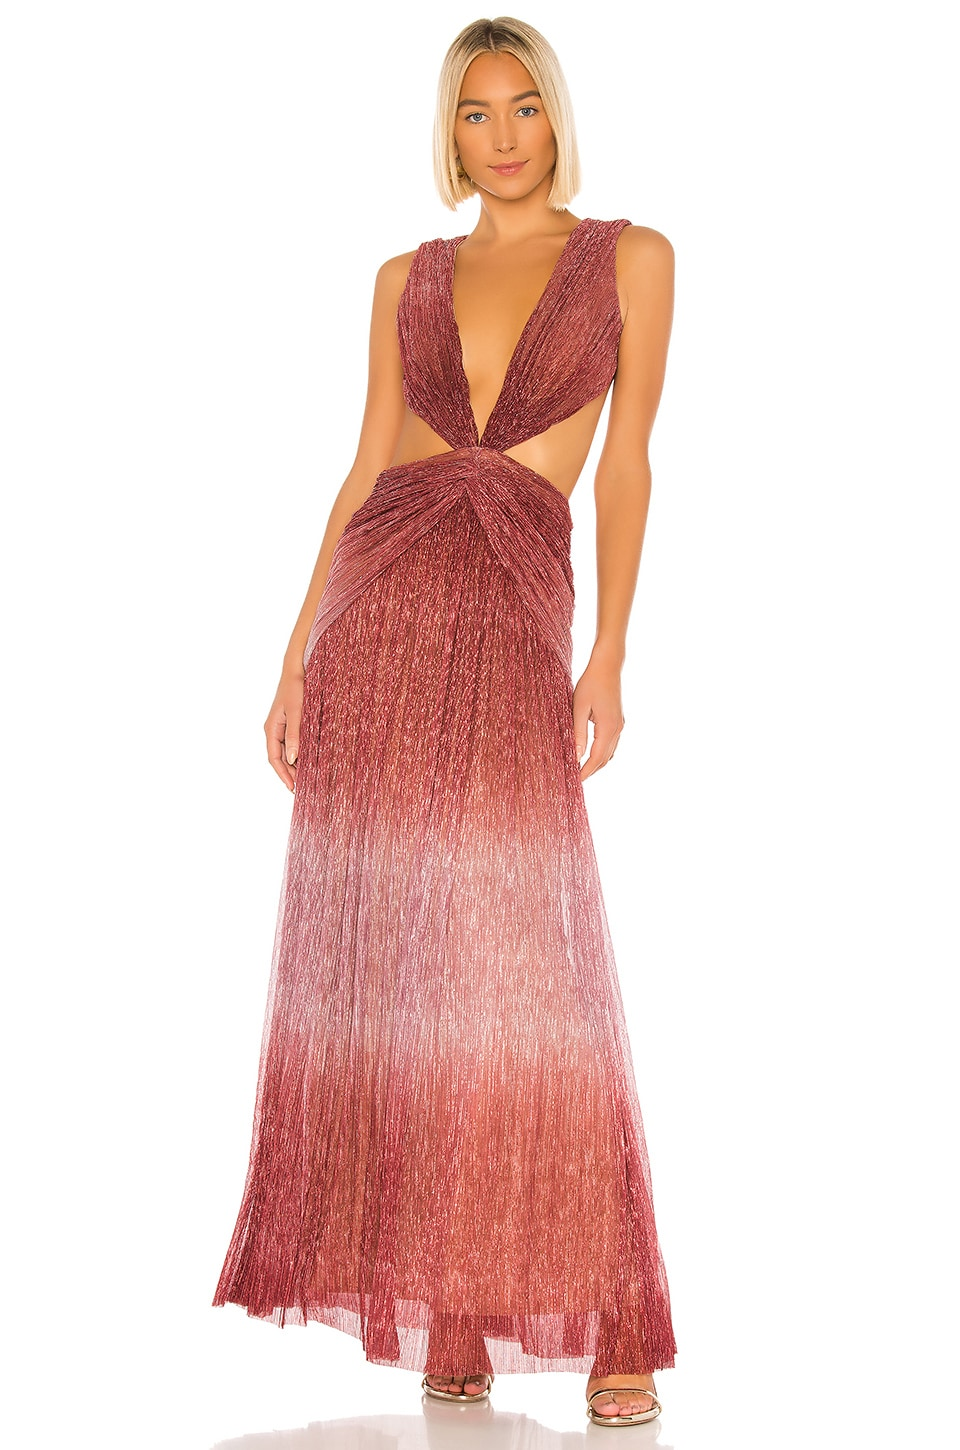 PatBO Ombre Lurex Sleeveless Cutout Gown in Light Orchid